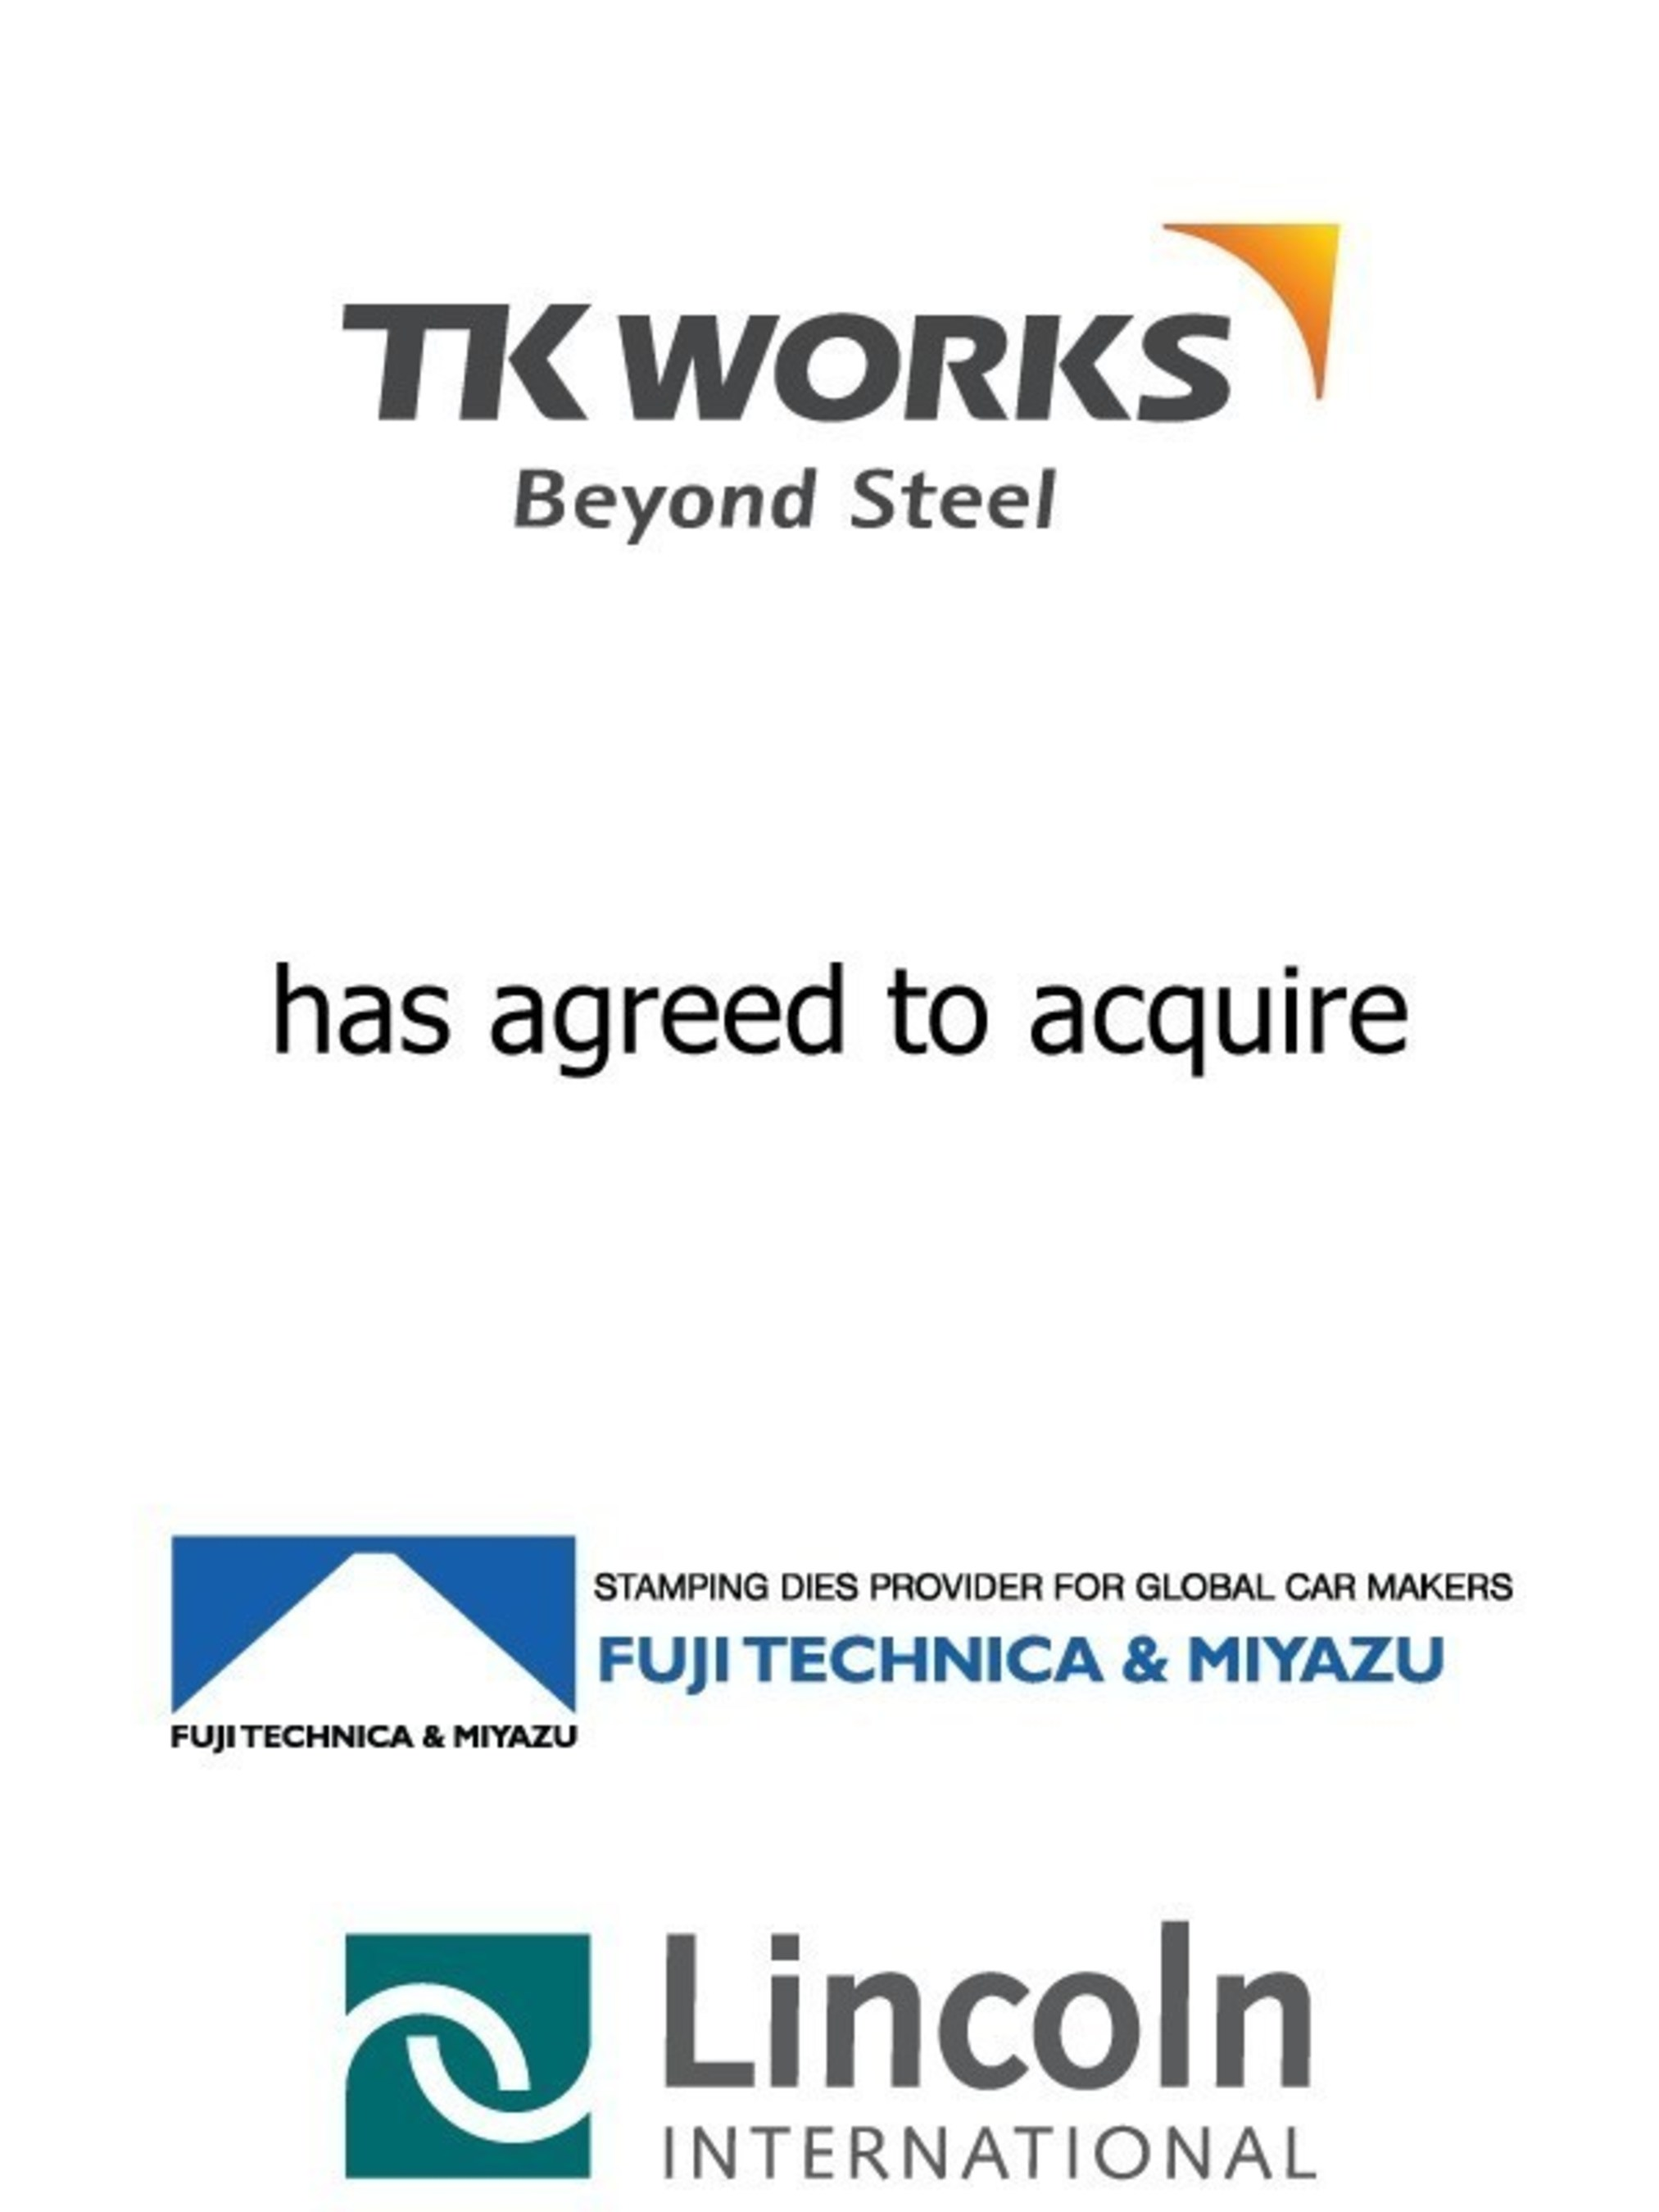 Lincoln International represents Toyo Kohan Corporation in the announced acquisition of Fuji